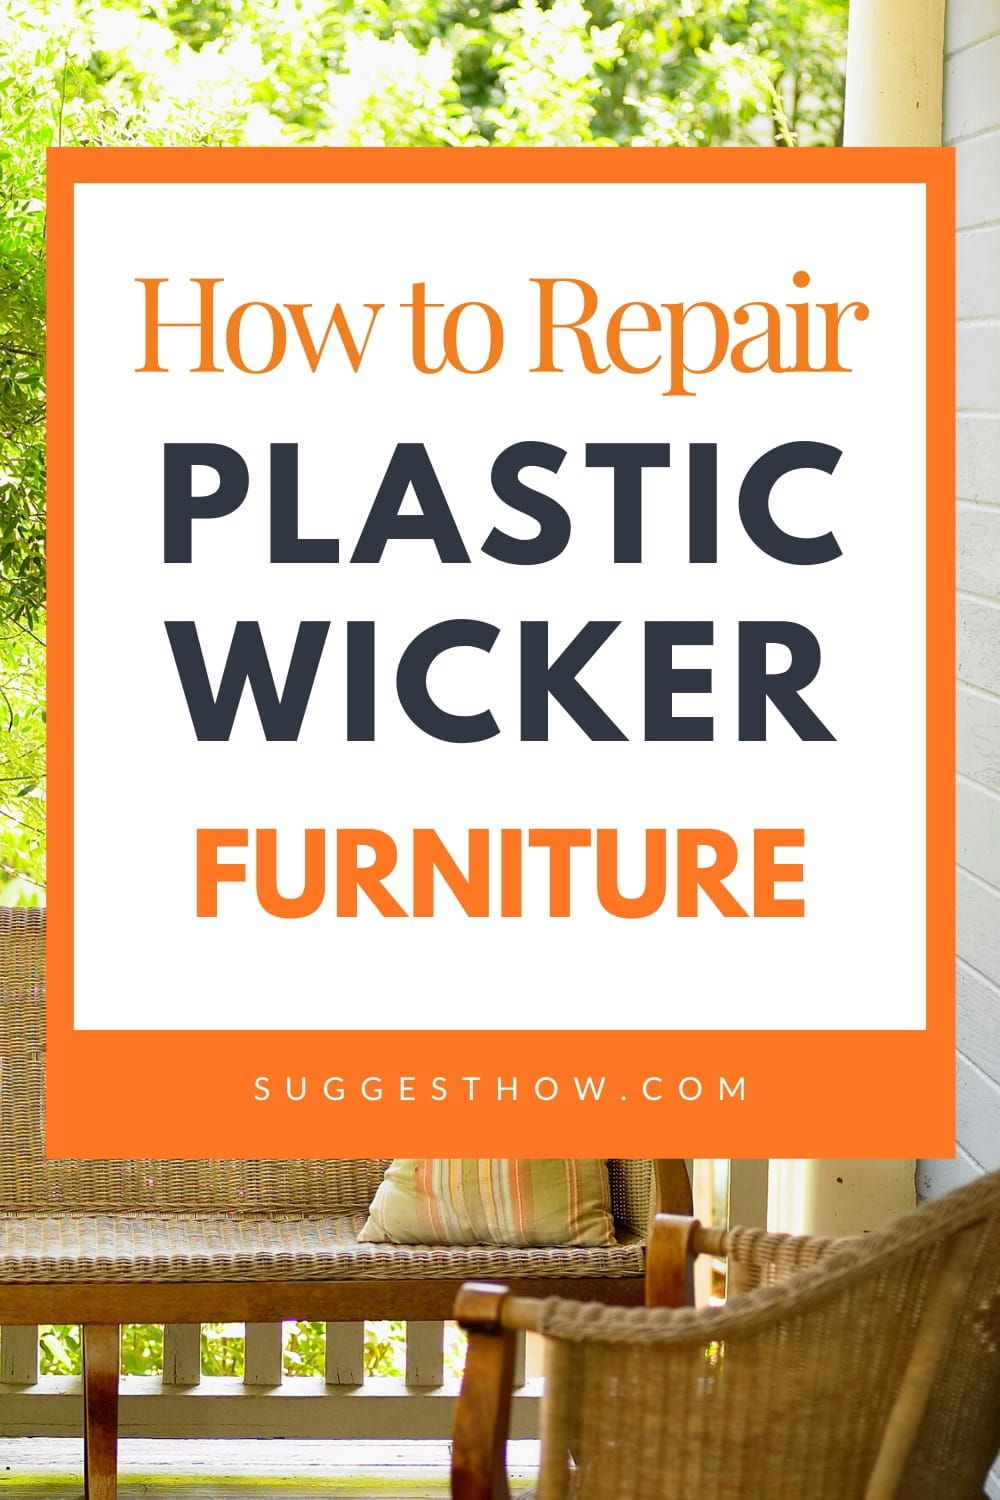 How to Repair Plastic Wicker Furniture – 23 Easy Steps to Fix